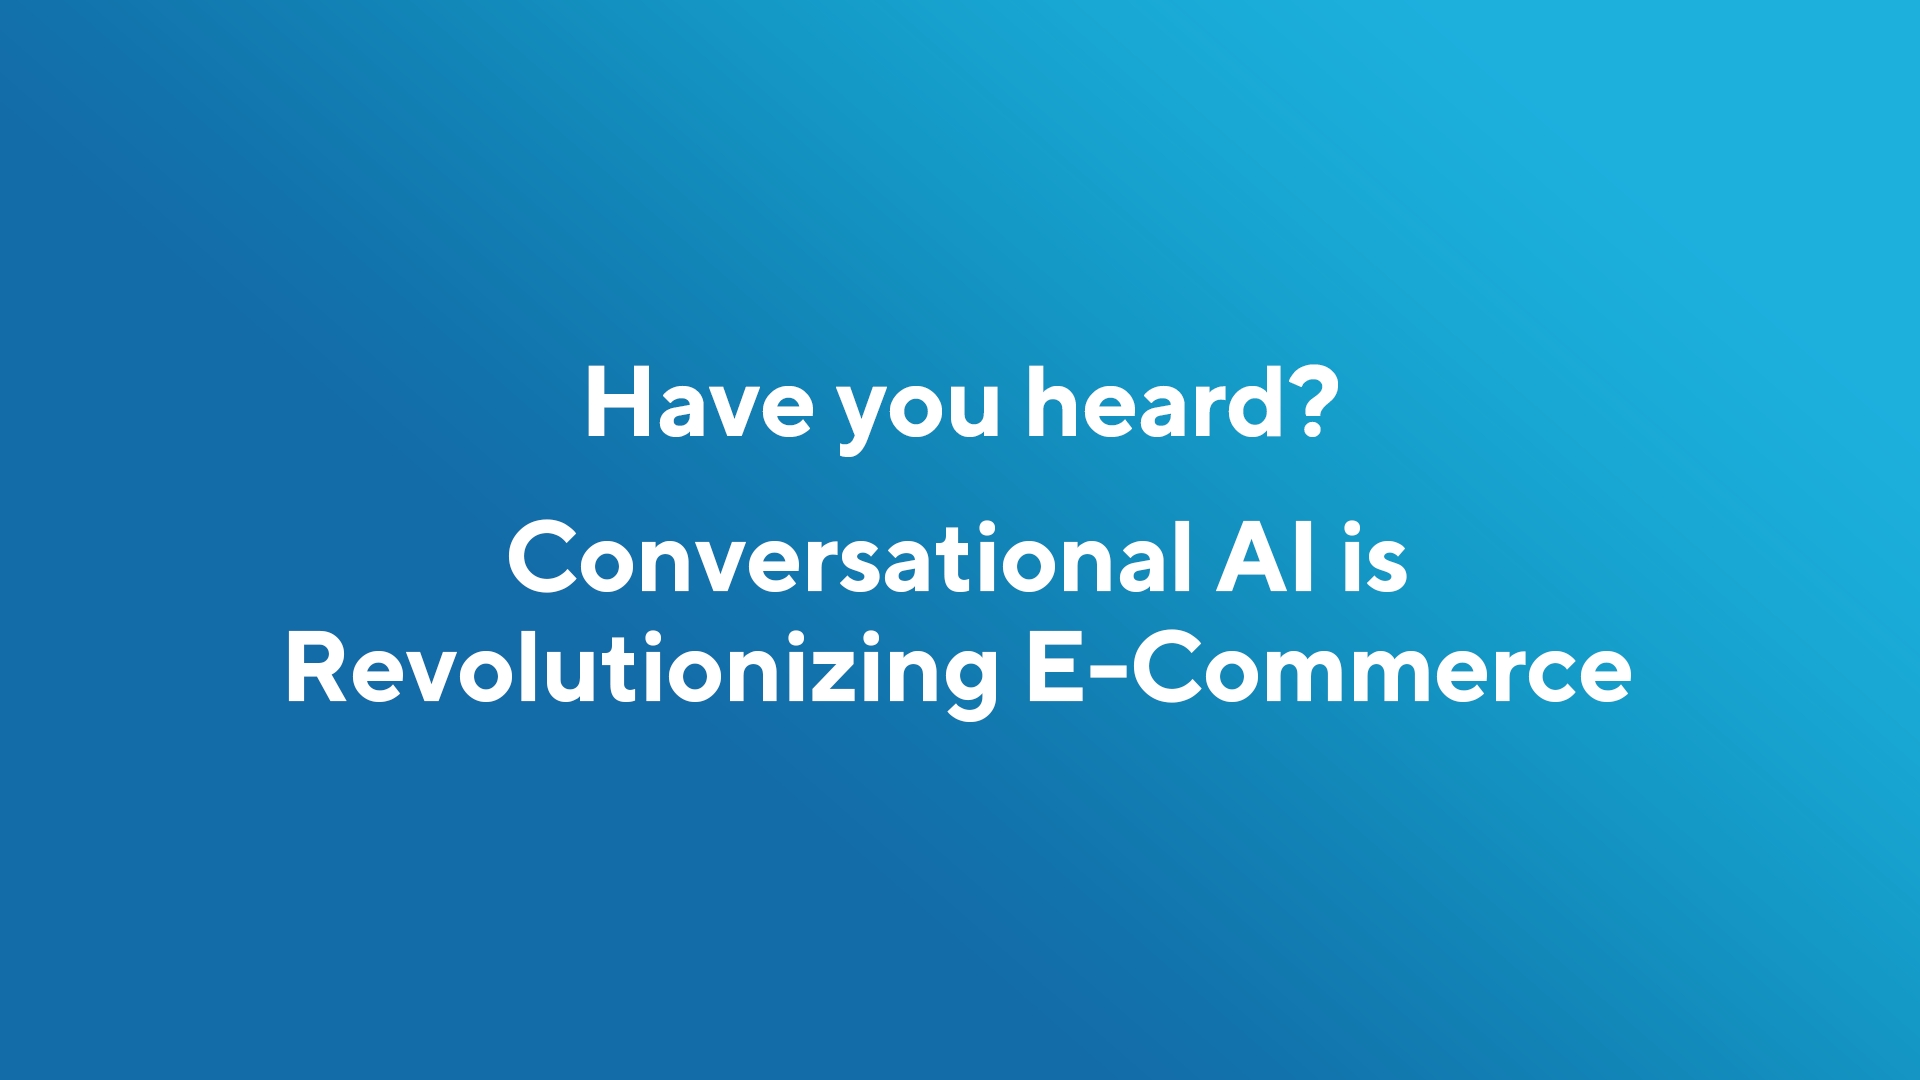 Have You Heard? Conversational AI is Revolutionizing e-Commerce